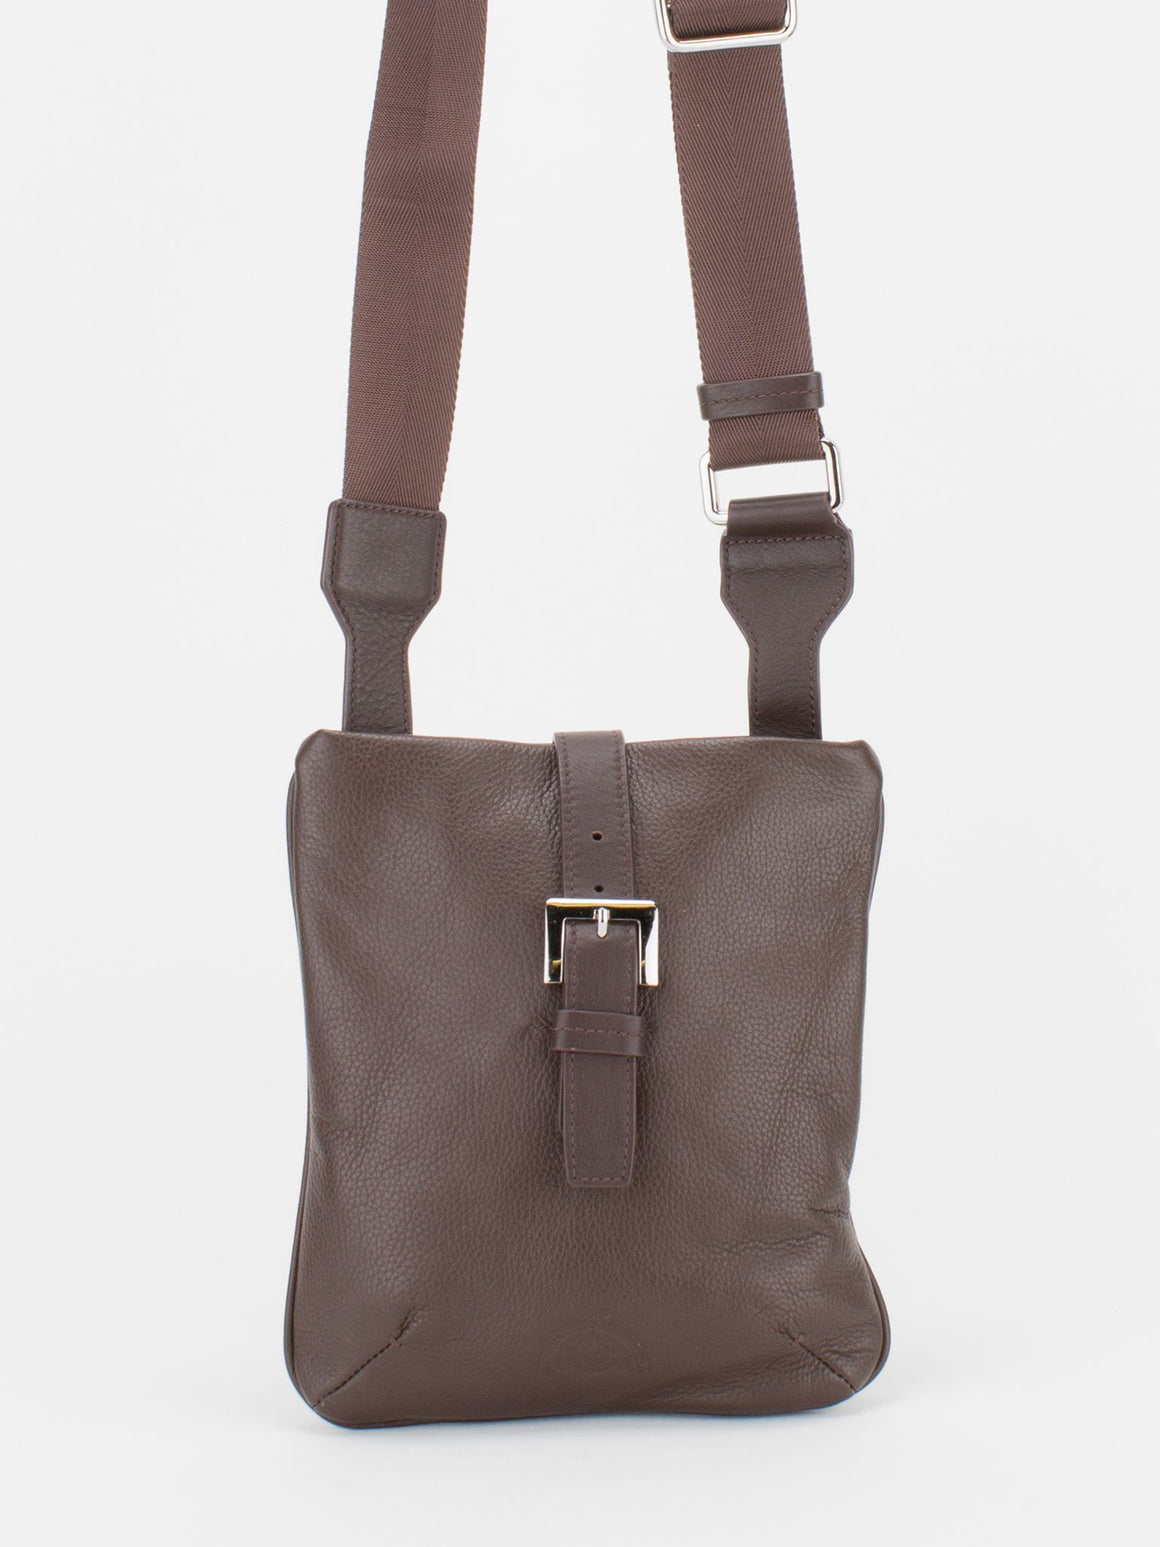 Derby Pebble Leather Crossbody - Brown